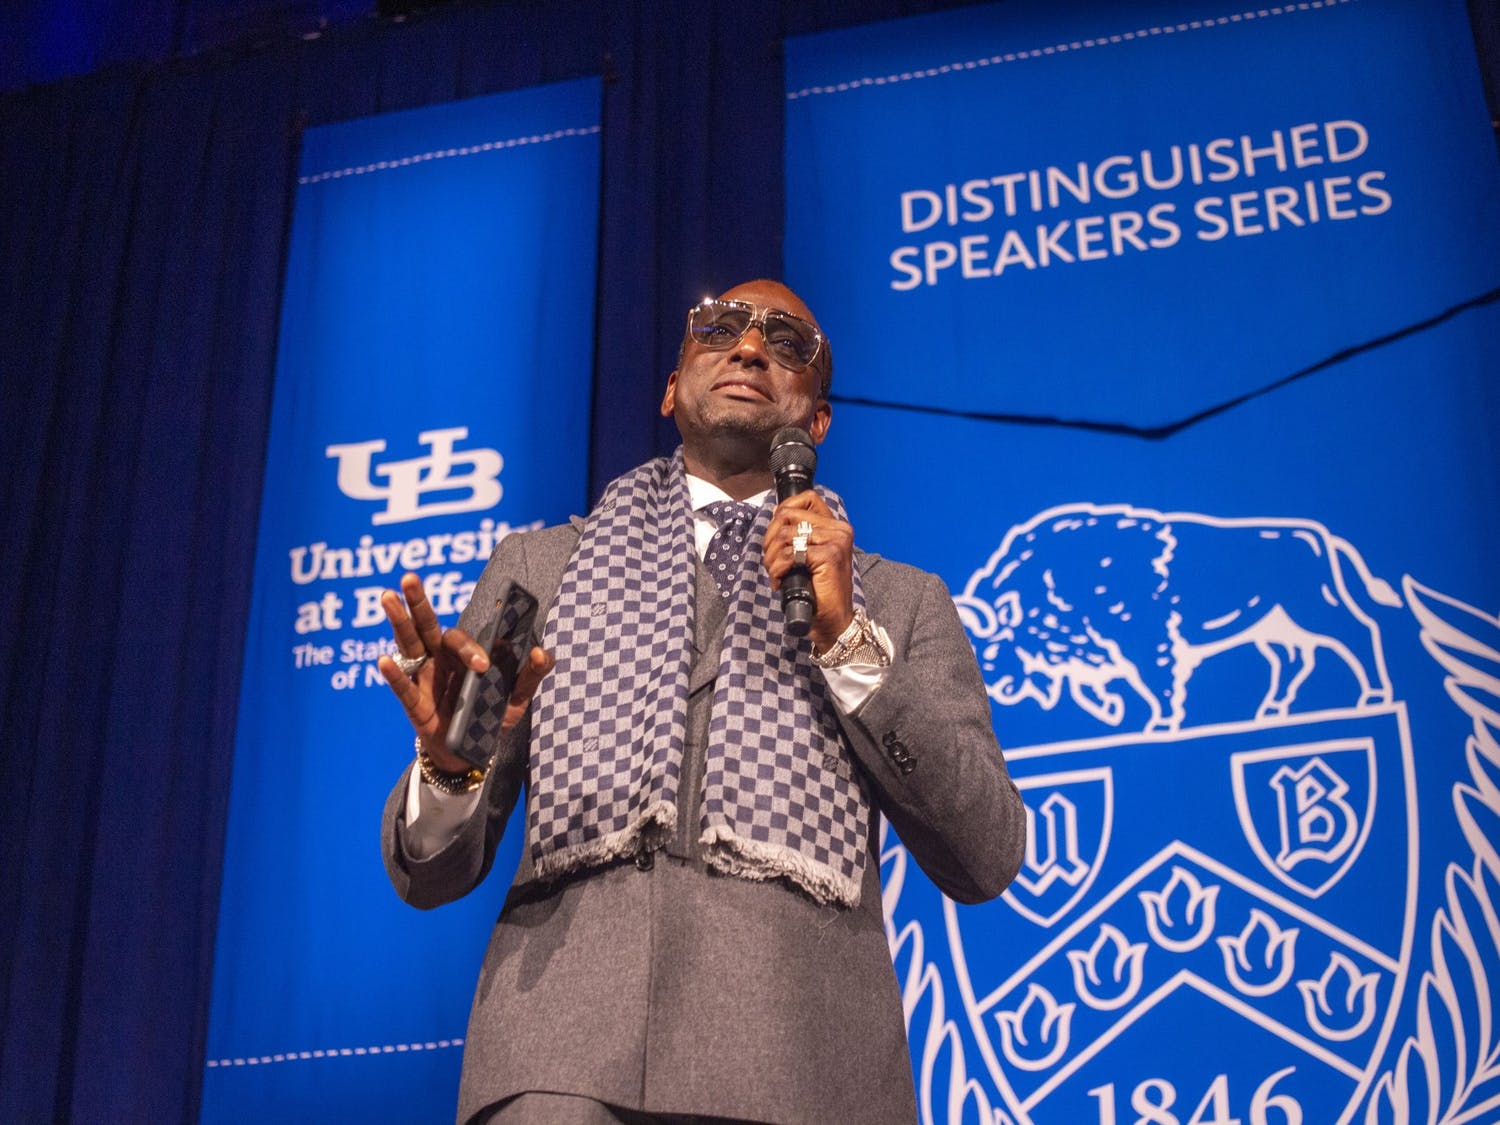 UB Distinguished speaker, Yusef Salaam shares his experiences as a criminal justice advocate and member of Central Park Five.